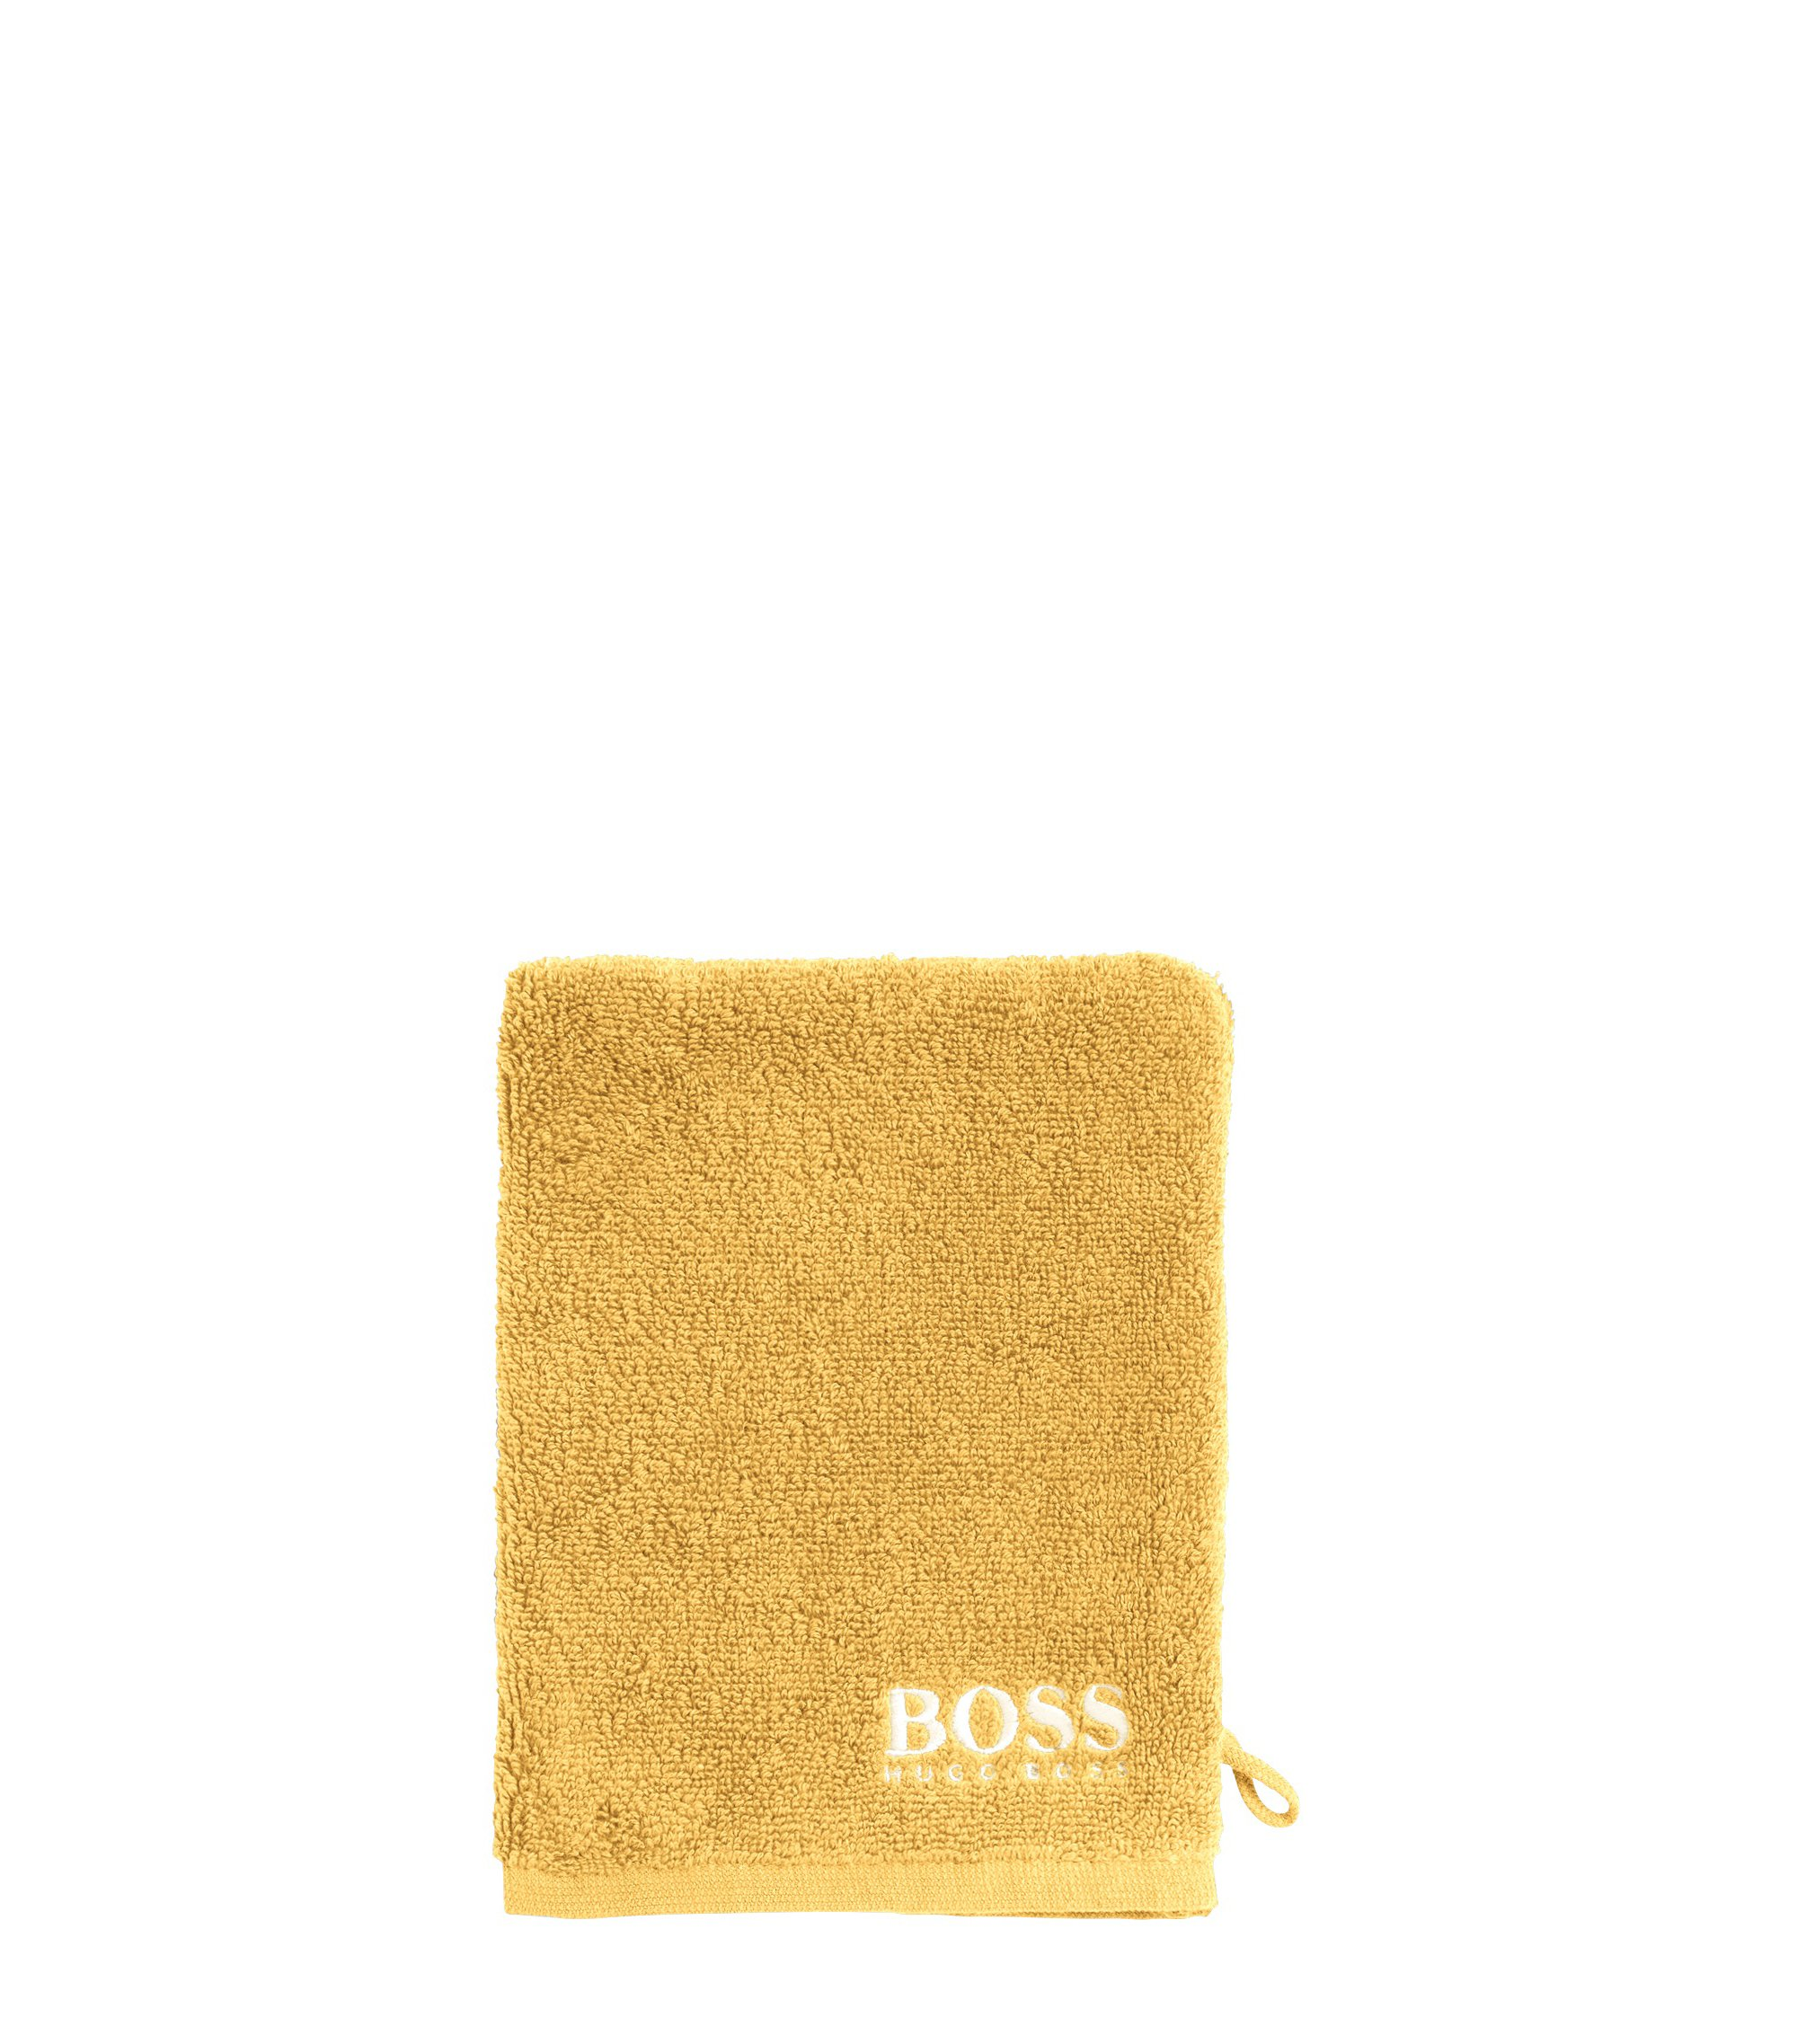 Finest Egyptian cotton washing mitt with contrast logo embroidery, Gold